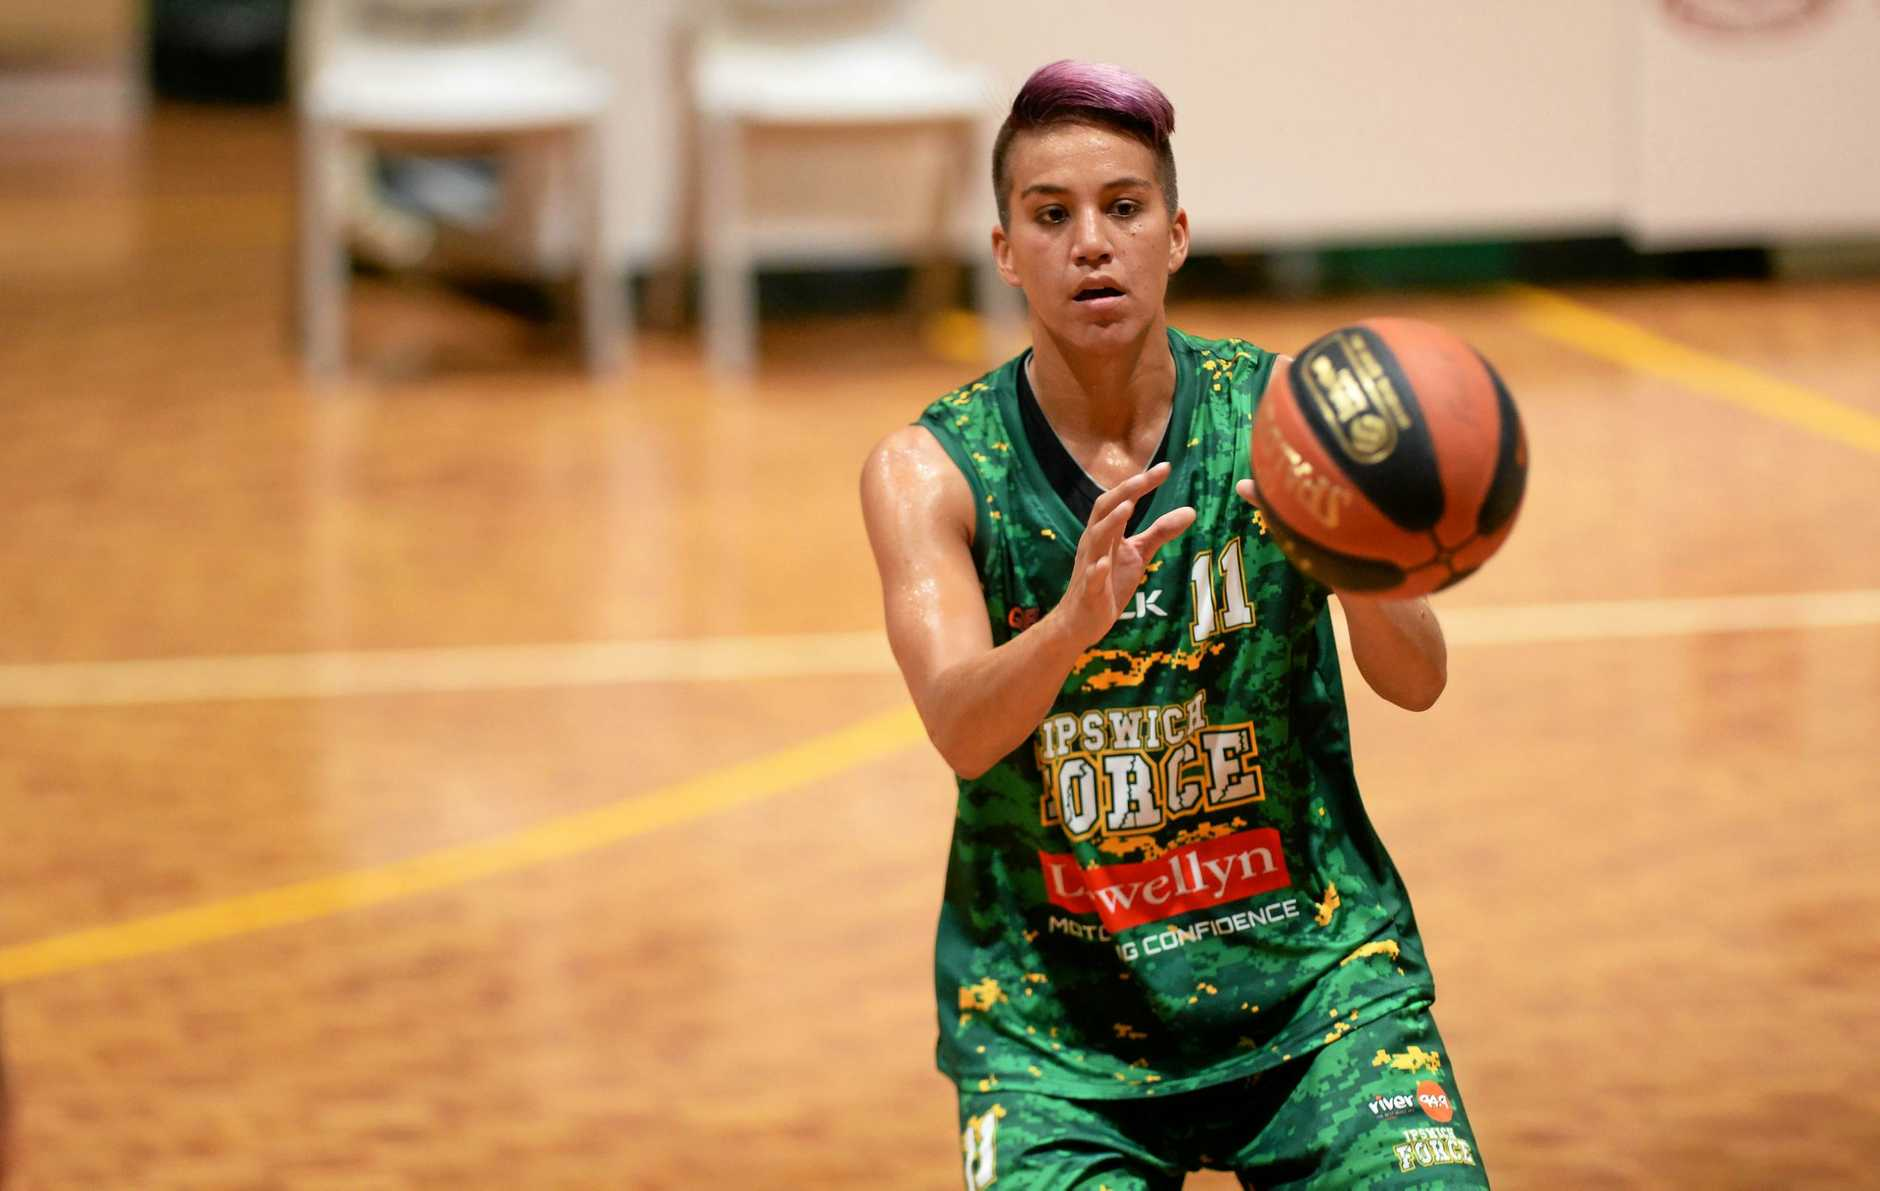 Ipswich Force V Cairns Dolphins women's basketball. Amanda Johnson.